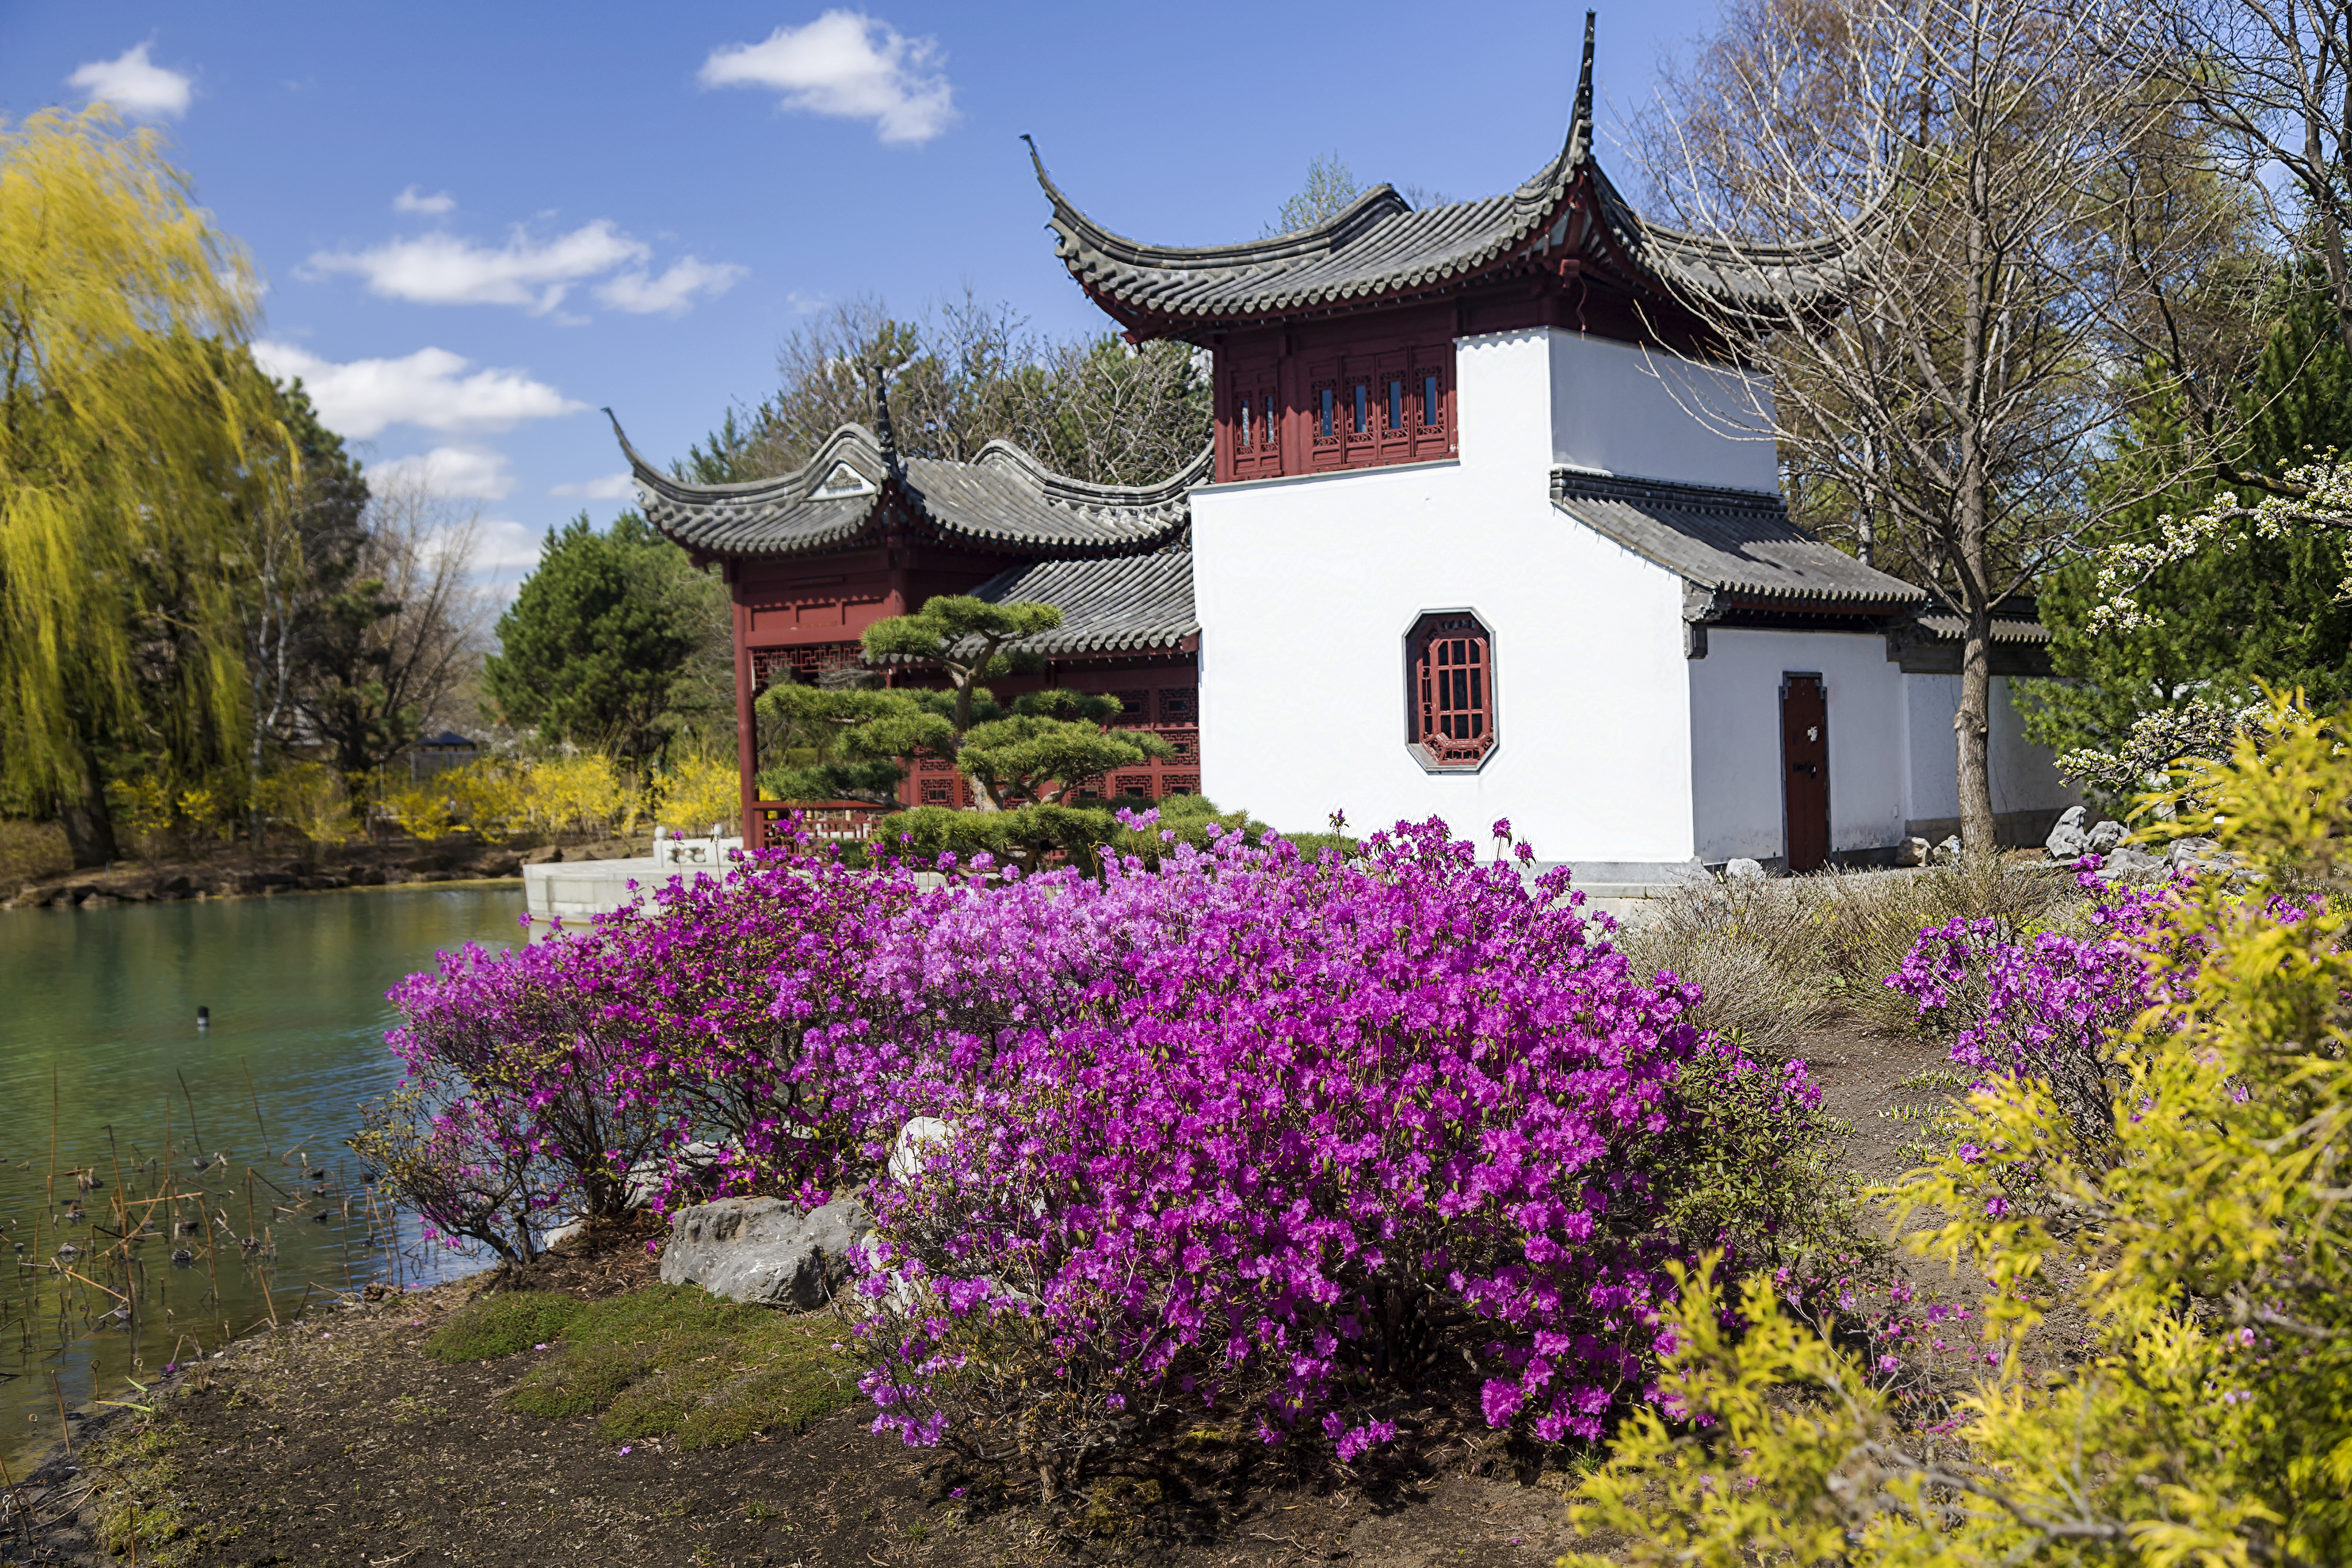 Chinese Garden in the Montreal Botanical Garden (Thinkstock/PA)